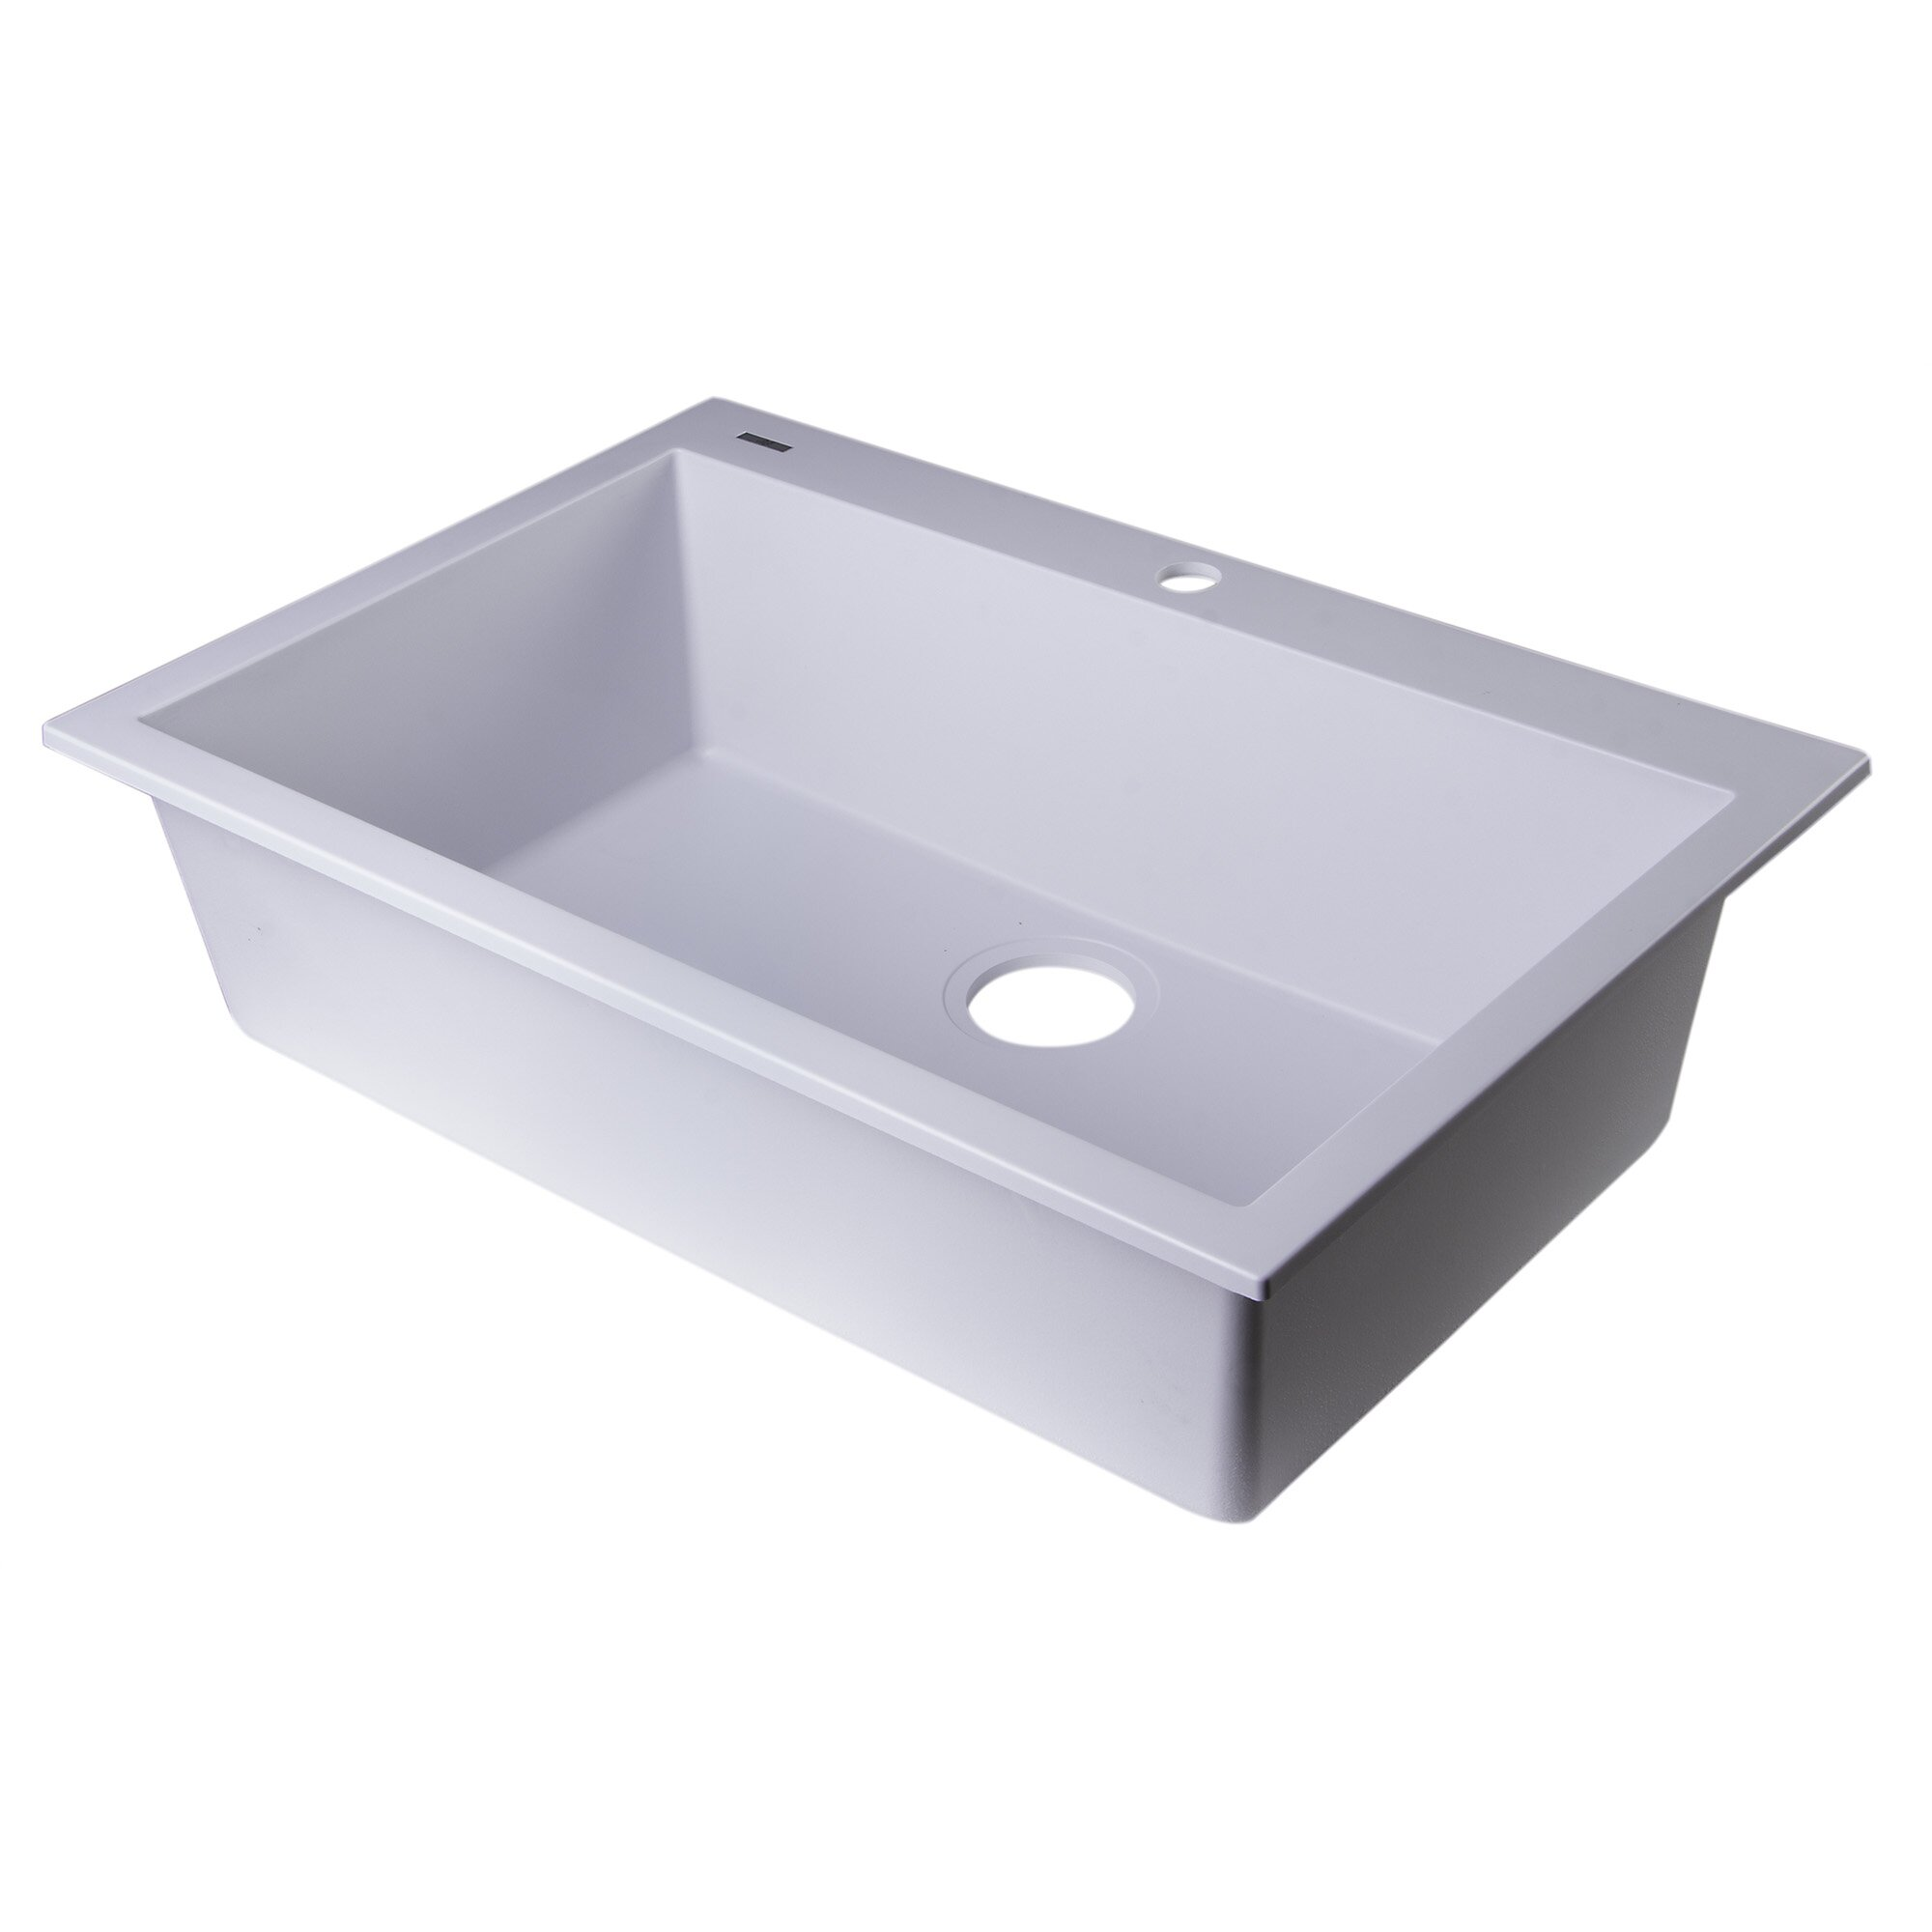 30 x 20 drop in single bowl kitchen sink - Bowl Kitchen Sink